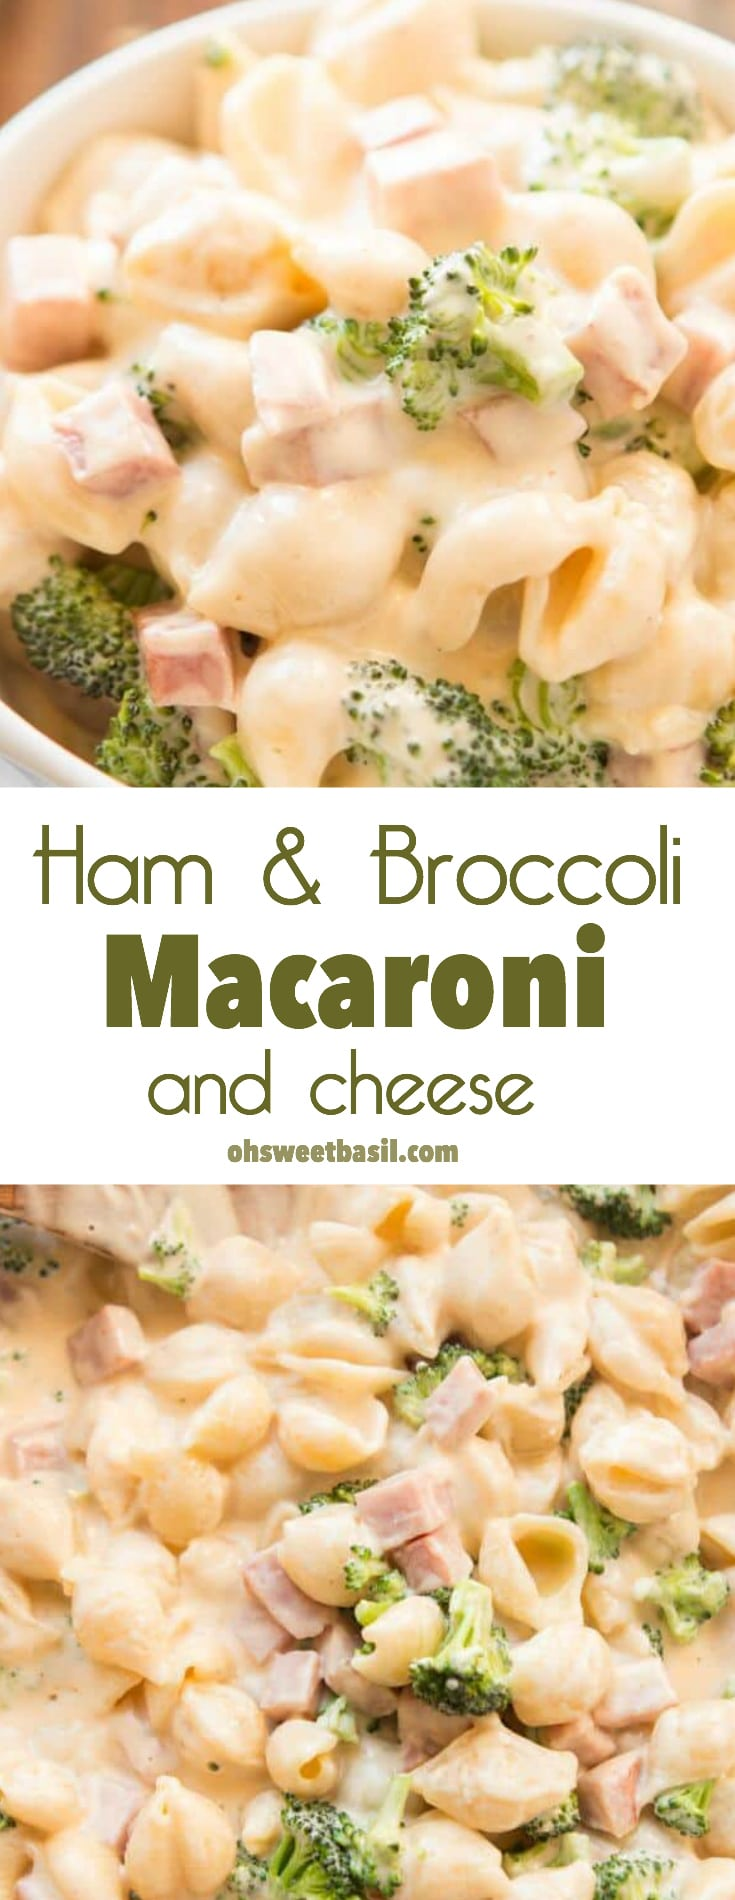 A cup of ham & broccoli macaroni and cheese